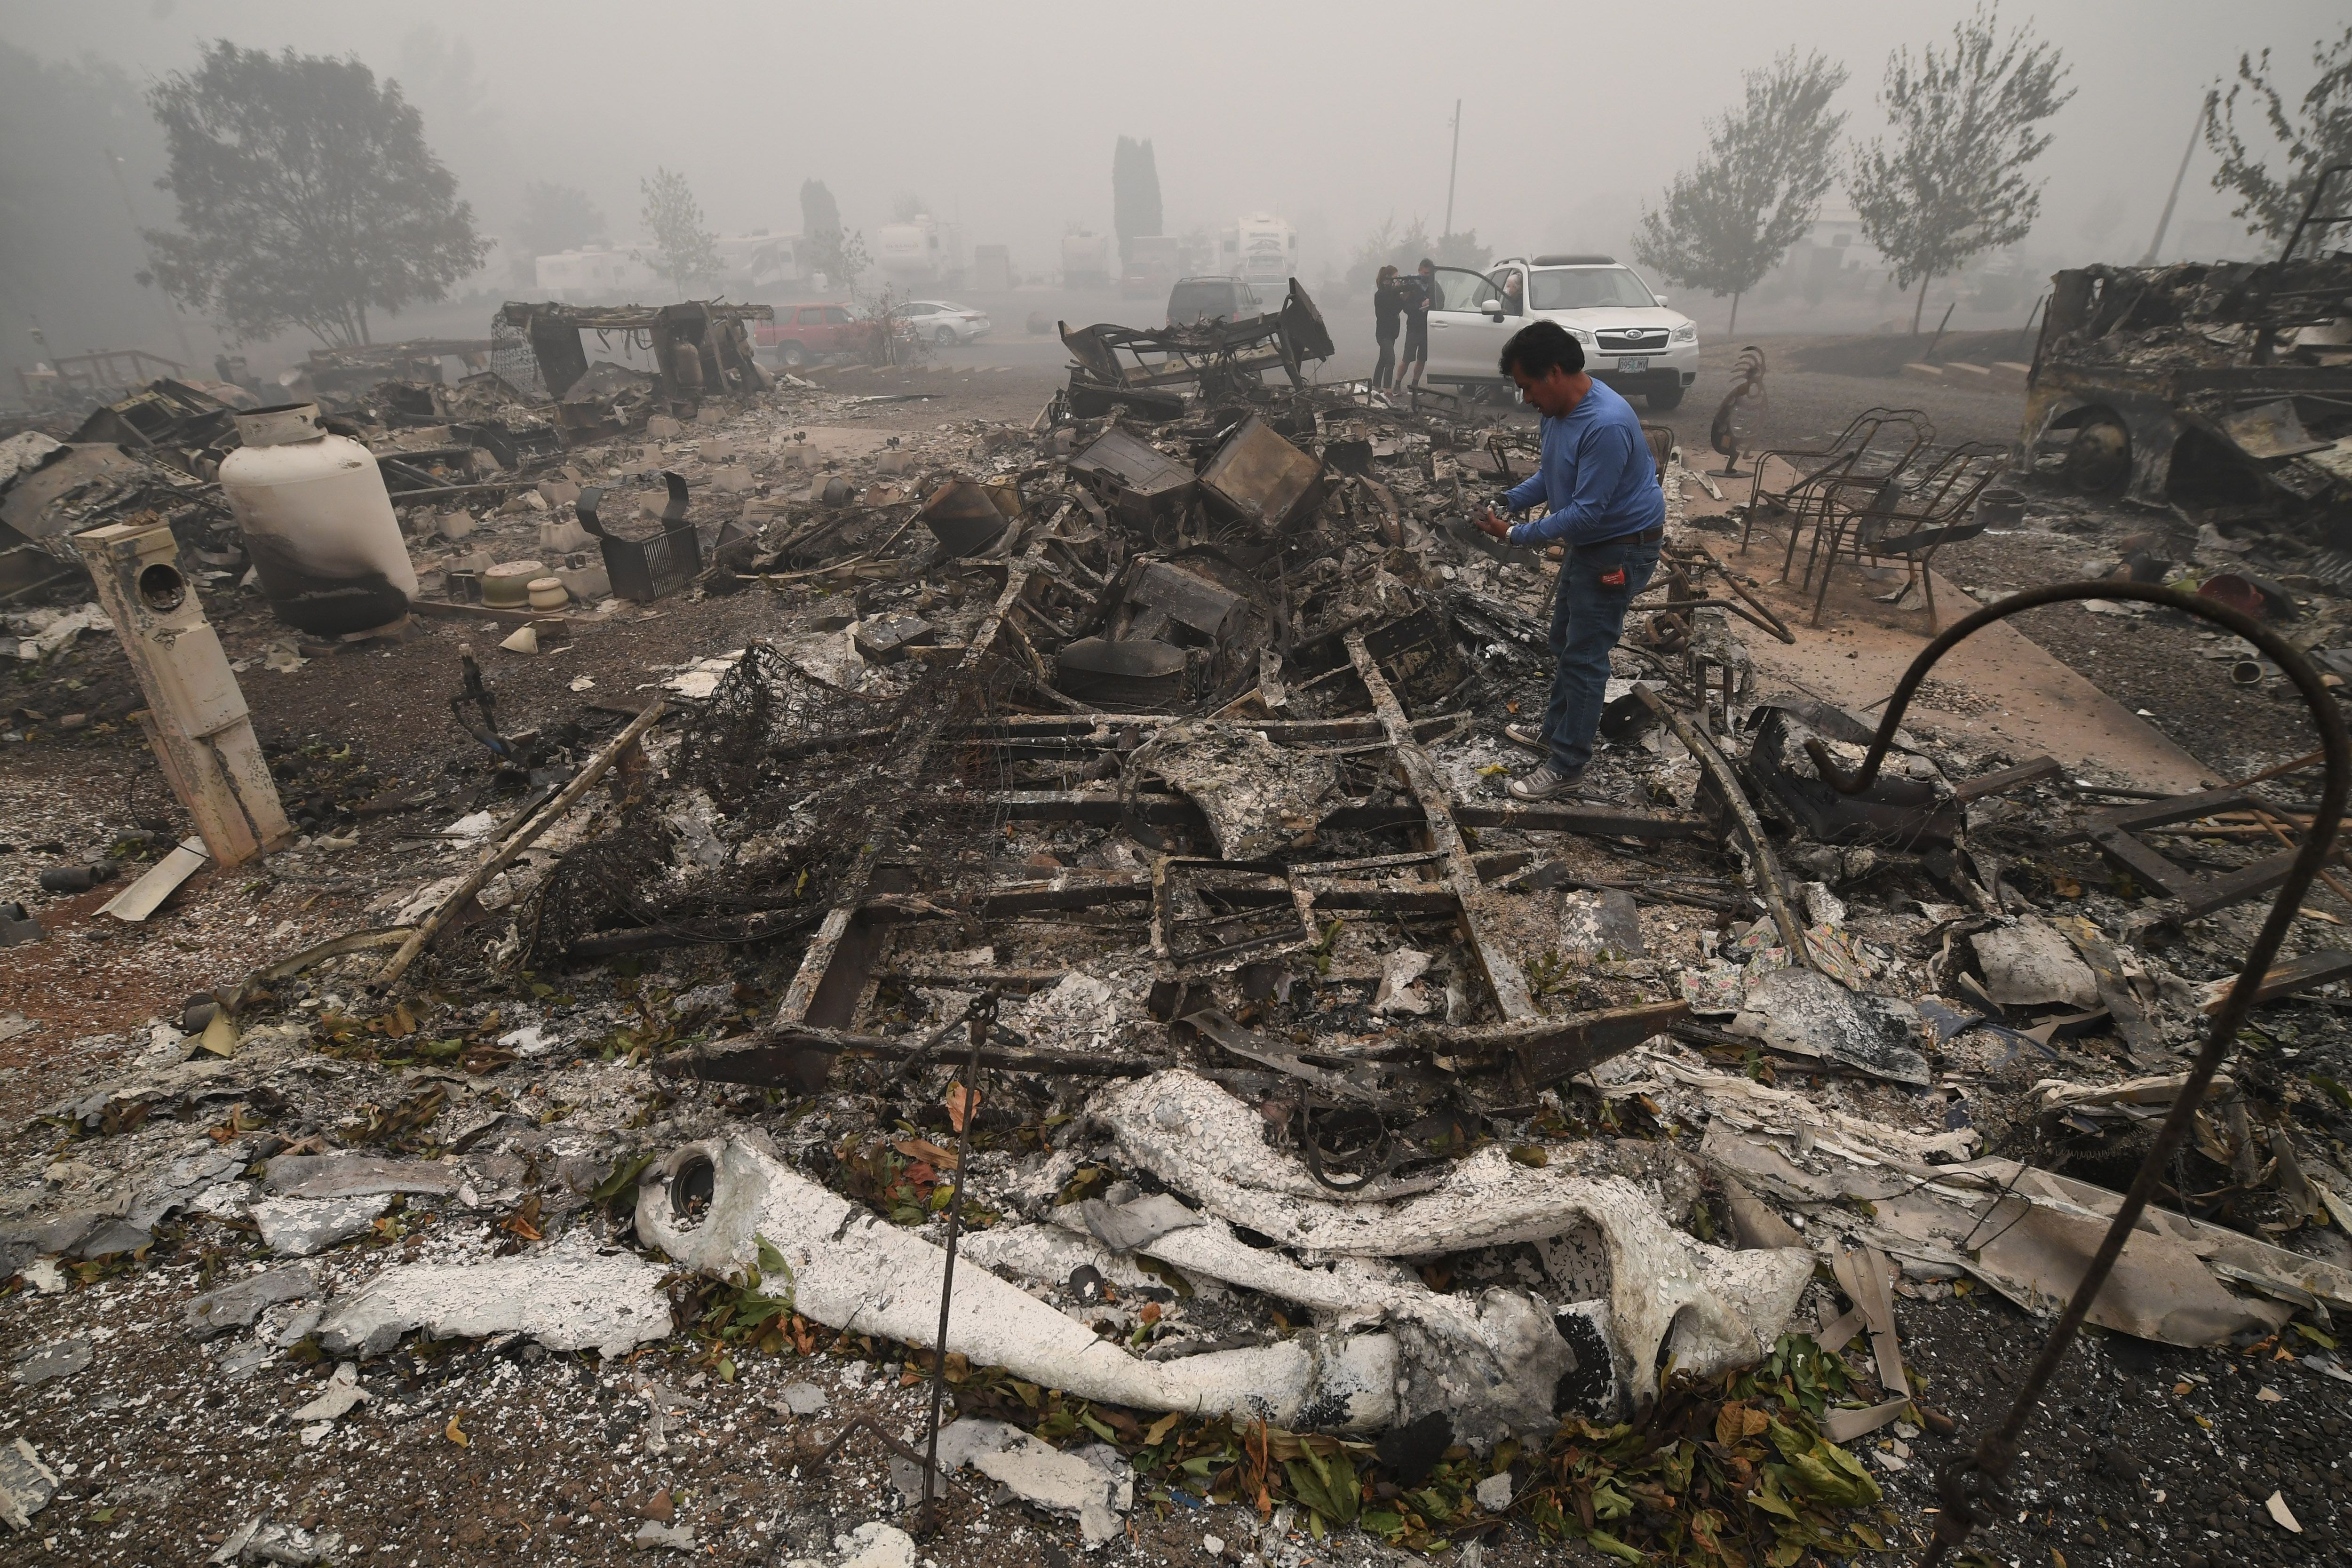 Marcelino Maceda looks for items in the remains of his mobile home after a wildfire swept through the R.V. park destroying multiple homes in Estacada, Oregon September 12